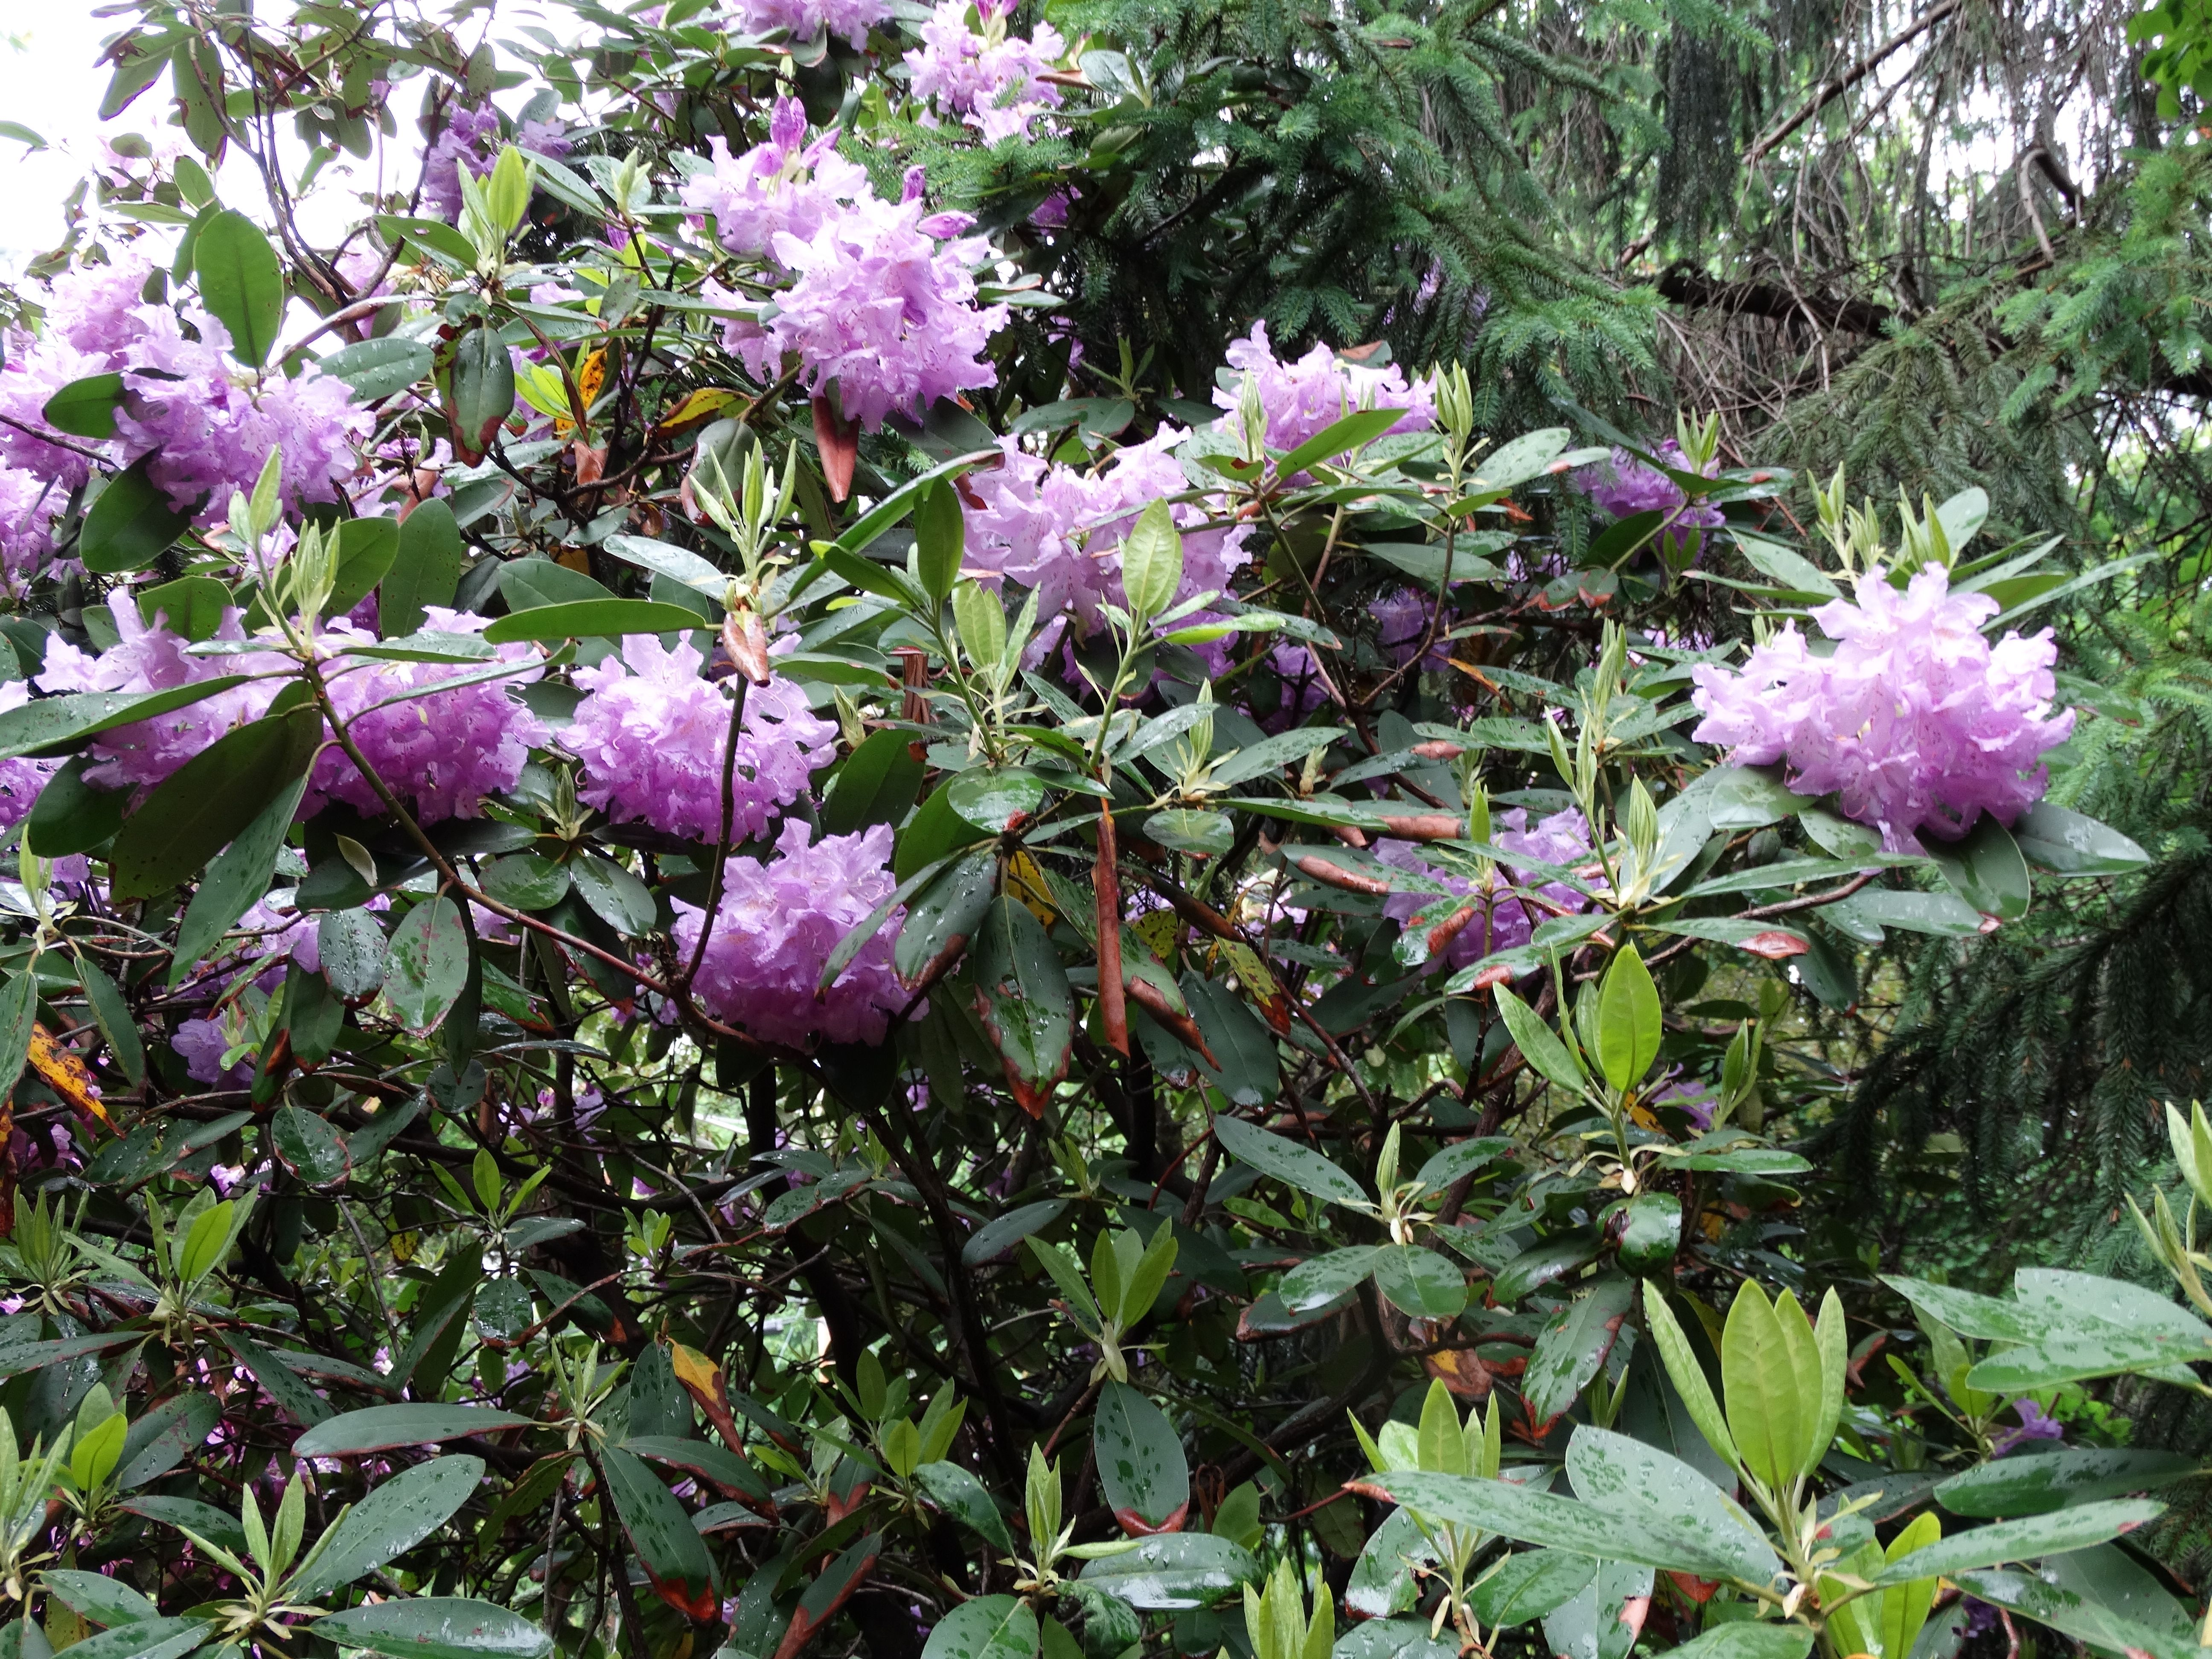 Rhododendron blooms in late May and early June in Western